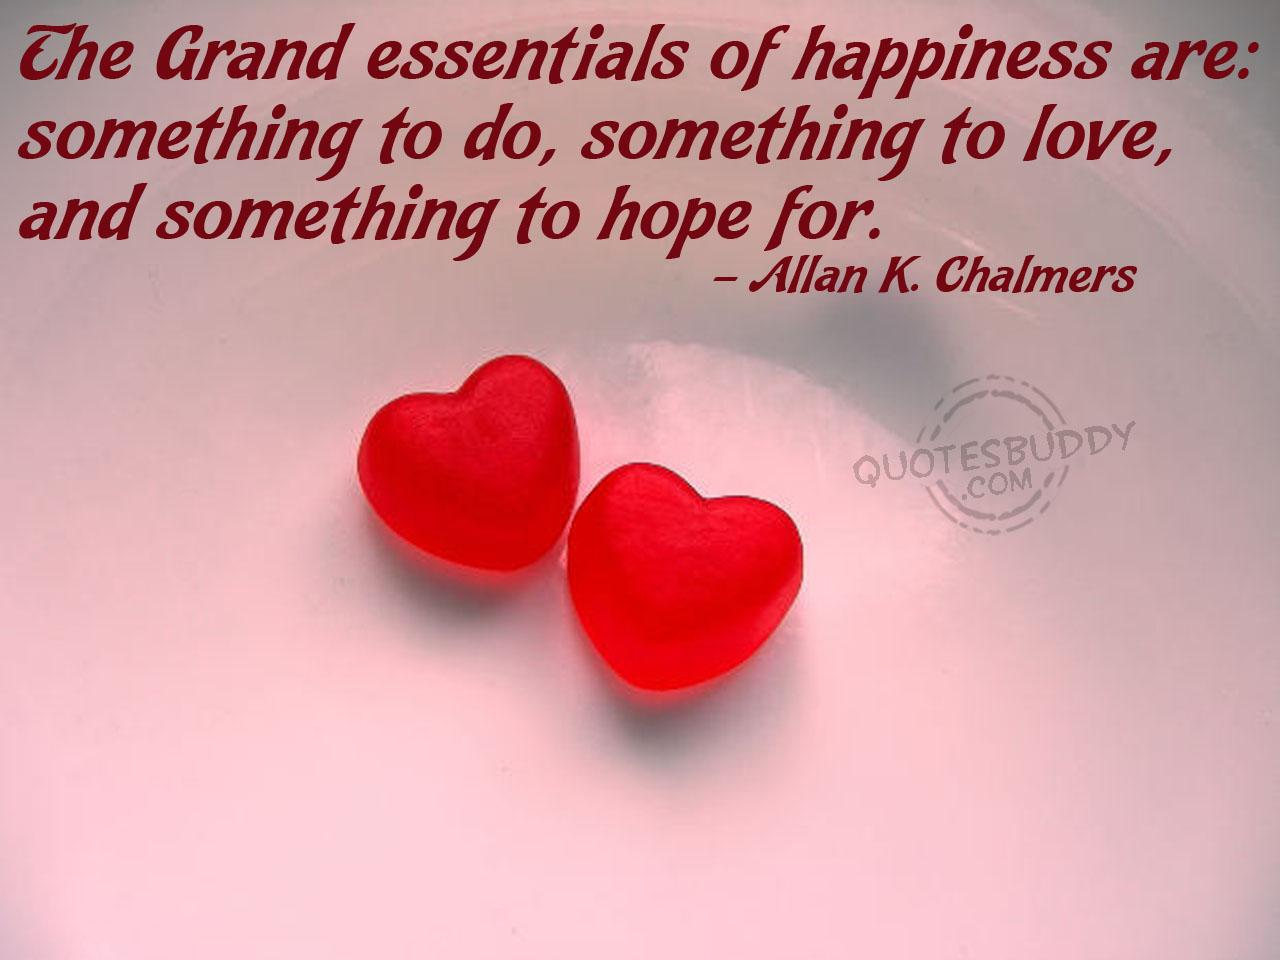 Allan K. Chalmers U2013 Essential Of Happiness Christian Wallpaper Free  Download. Use On PC